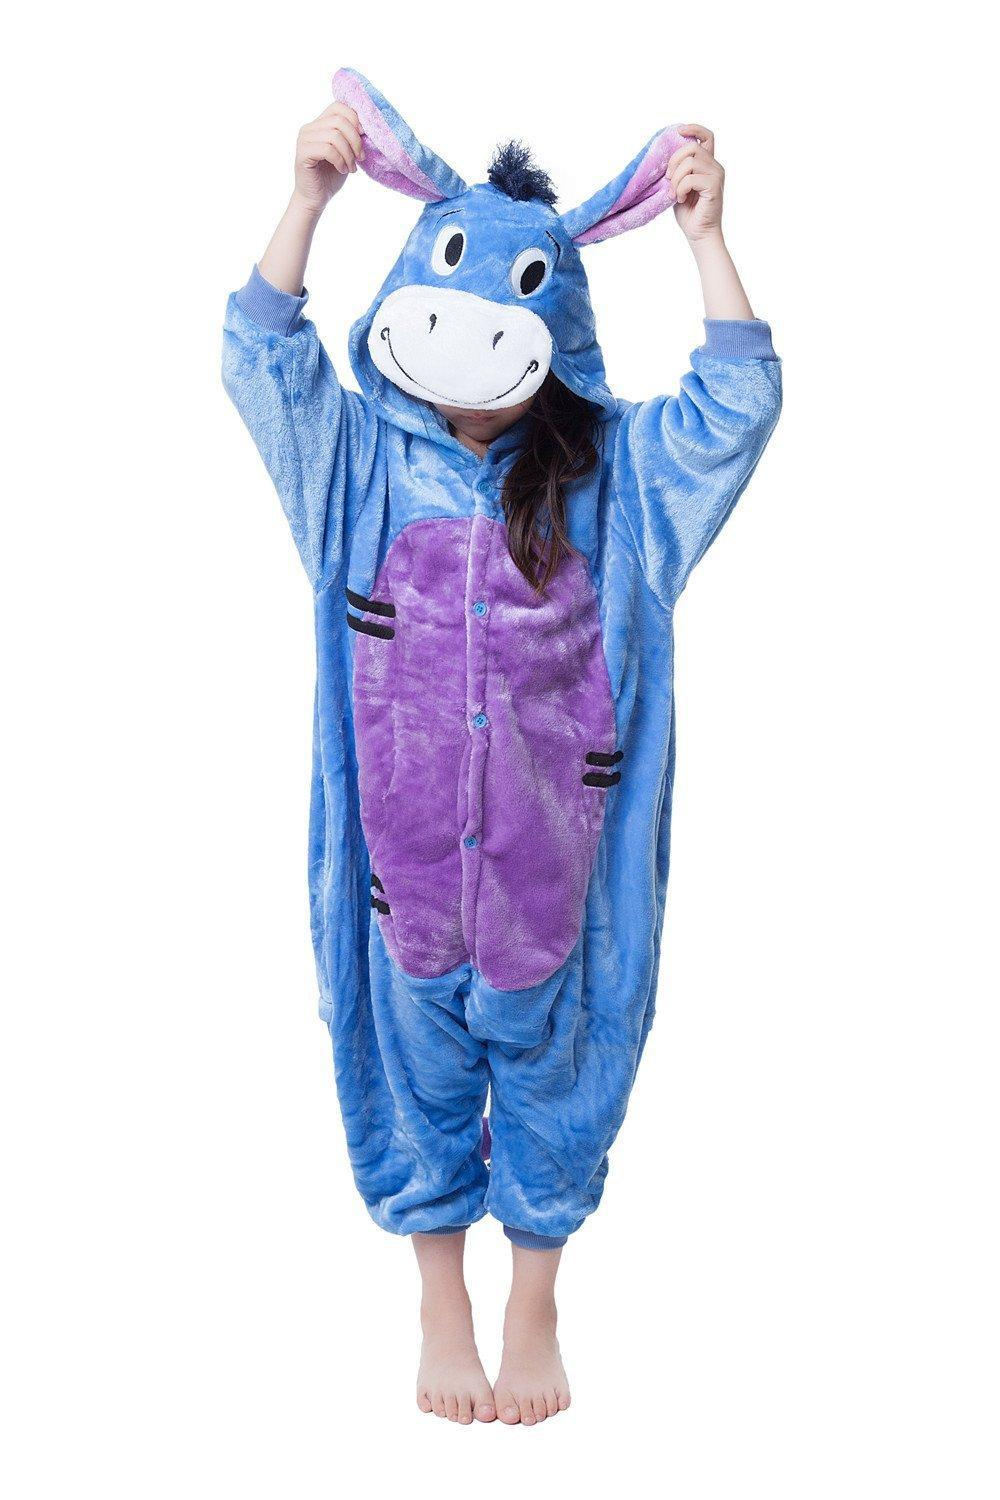 Donkey Onesies for Kids Onesie Pajamas Kigurumi Jumpsuit Hoodies Sleepwear For Children (no claw) Welcome Wholesale Order